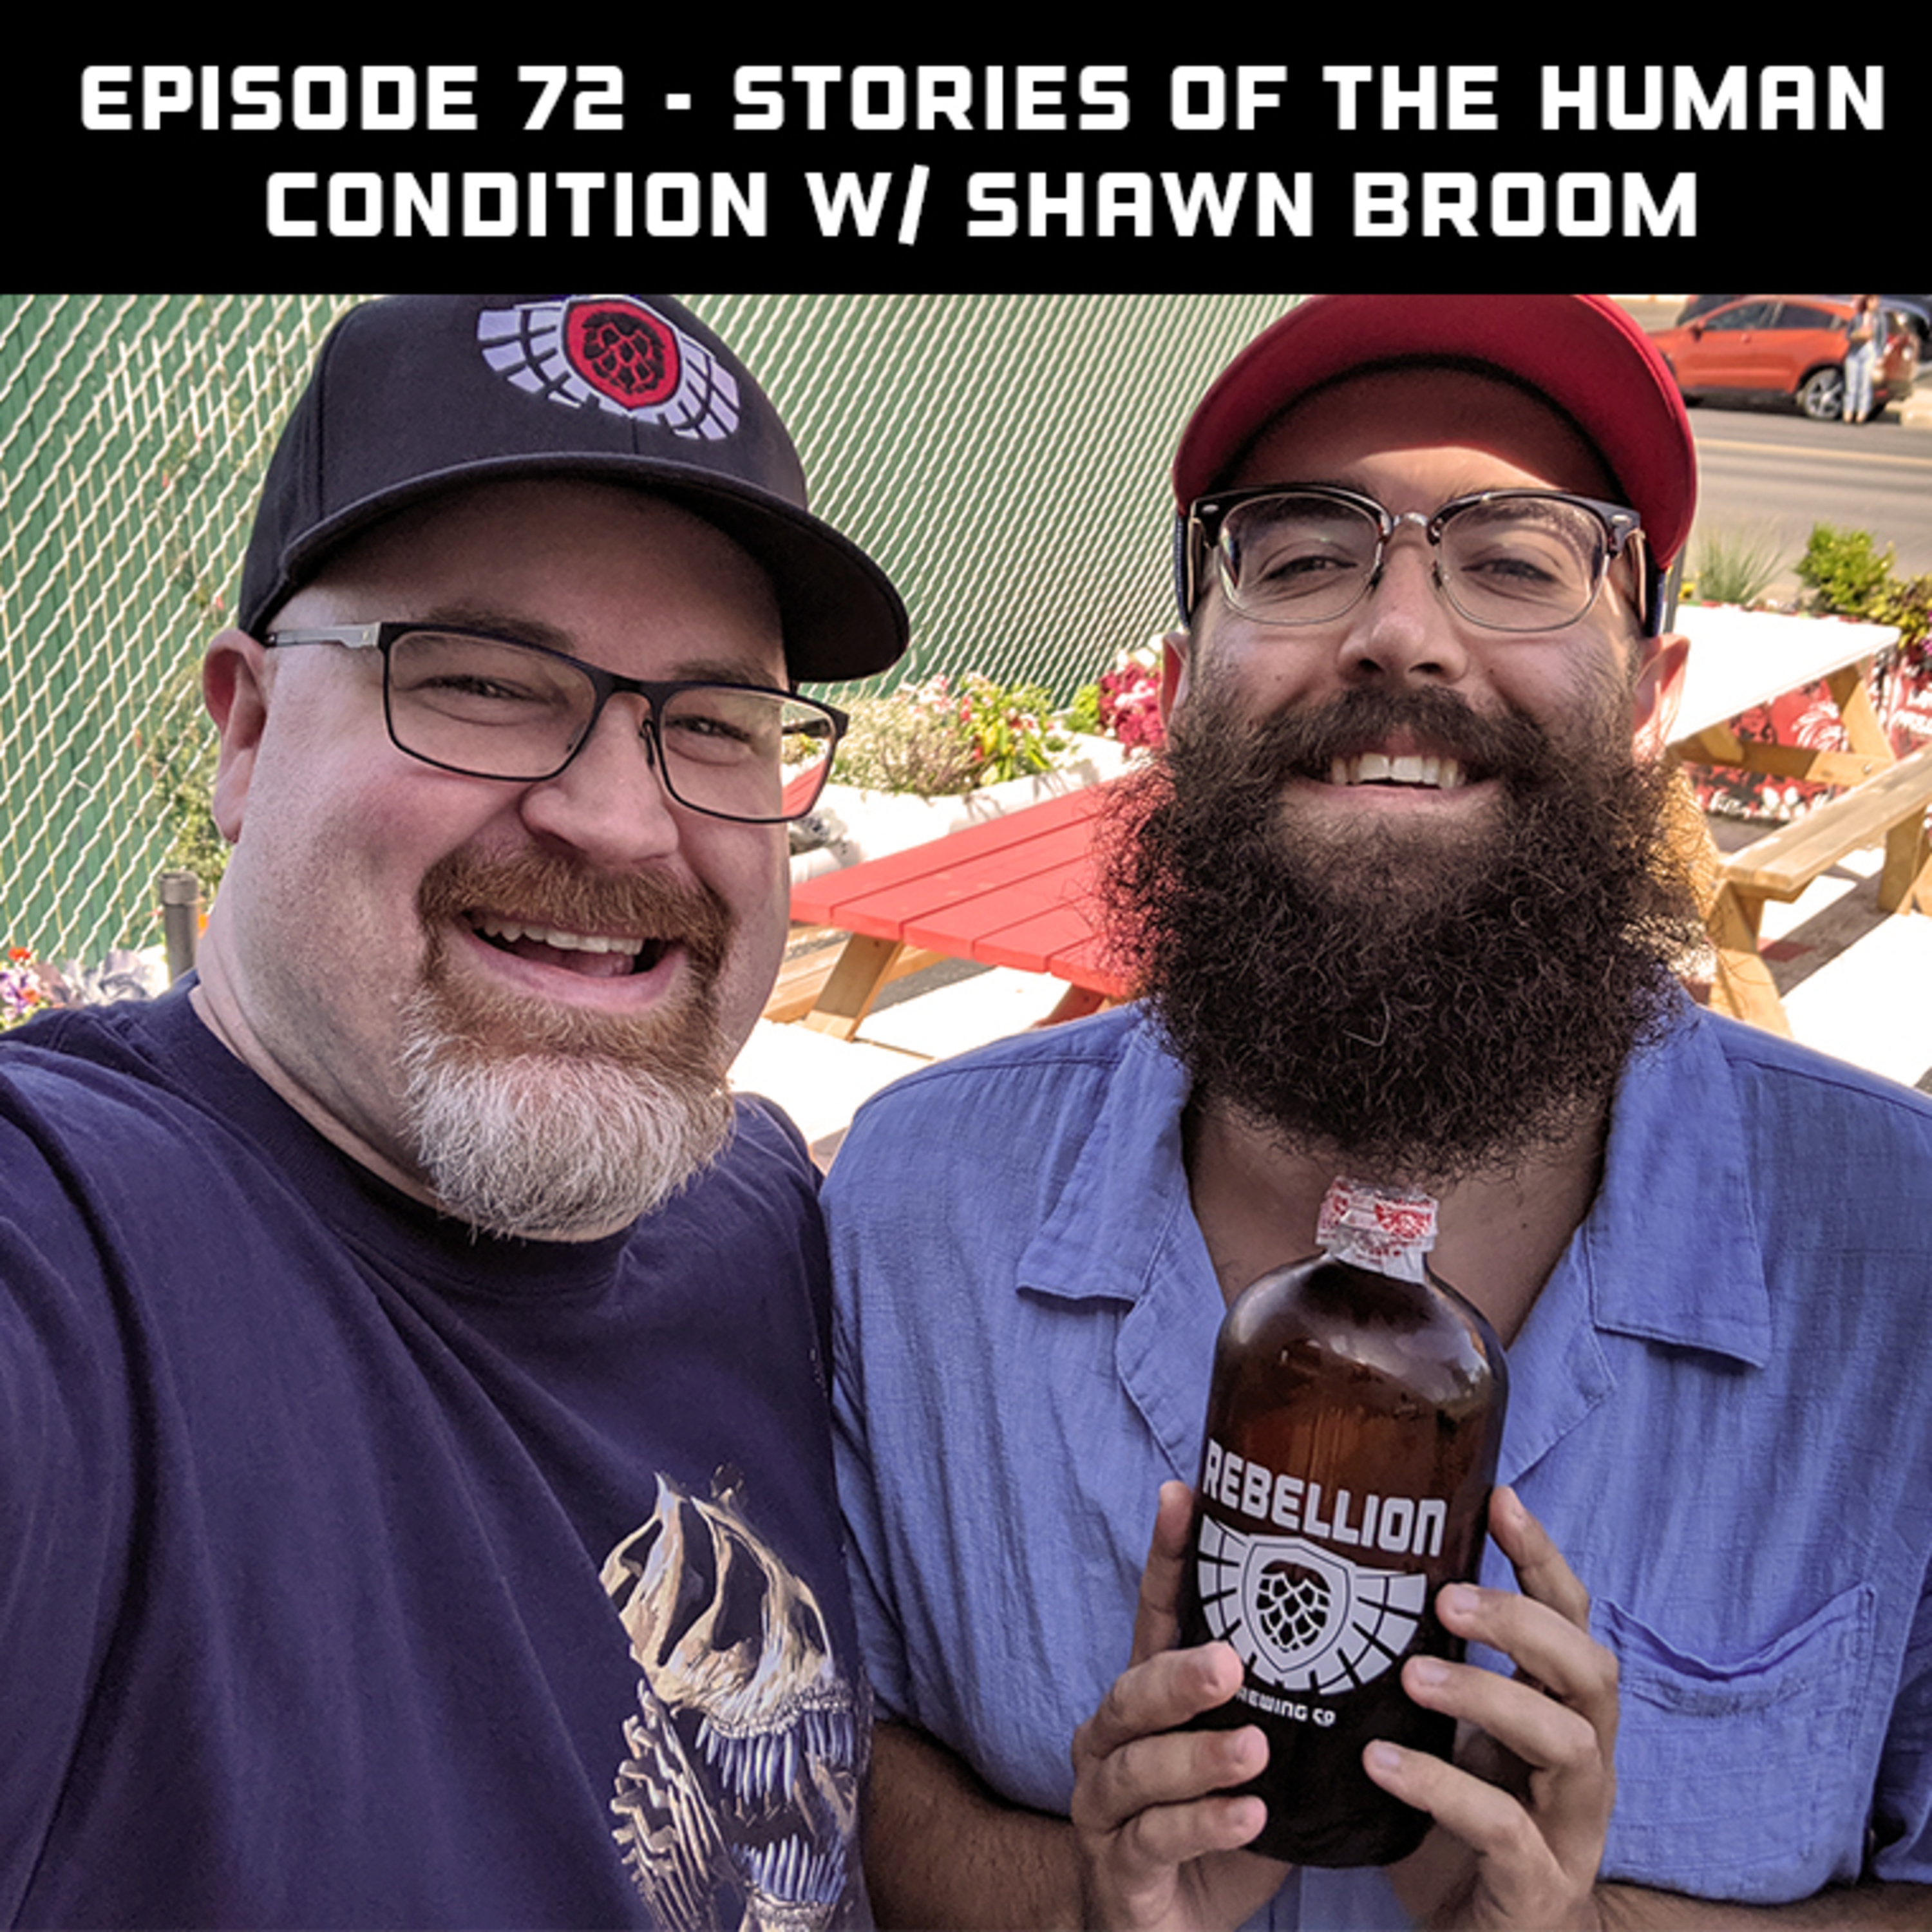 Stories of the Human Condition w/ Shawn Broom